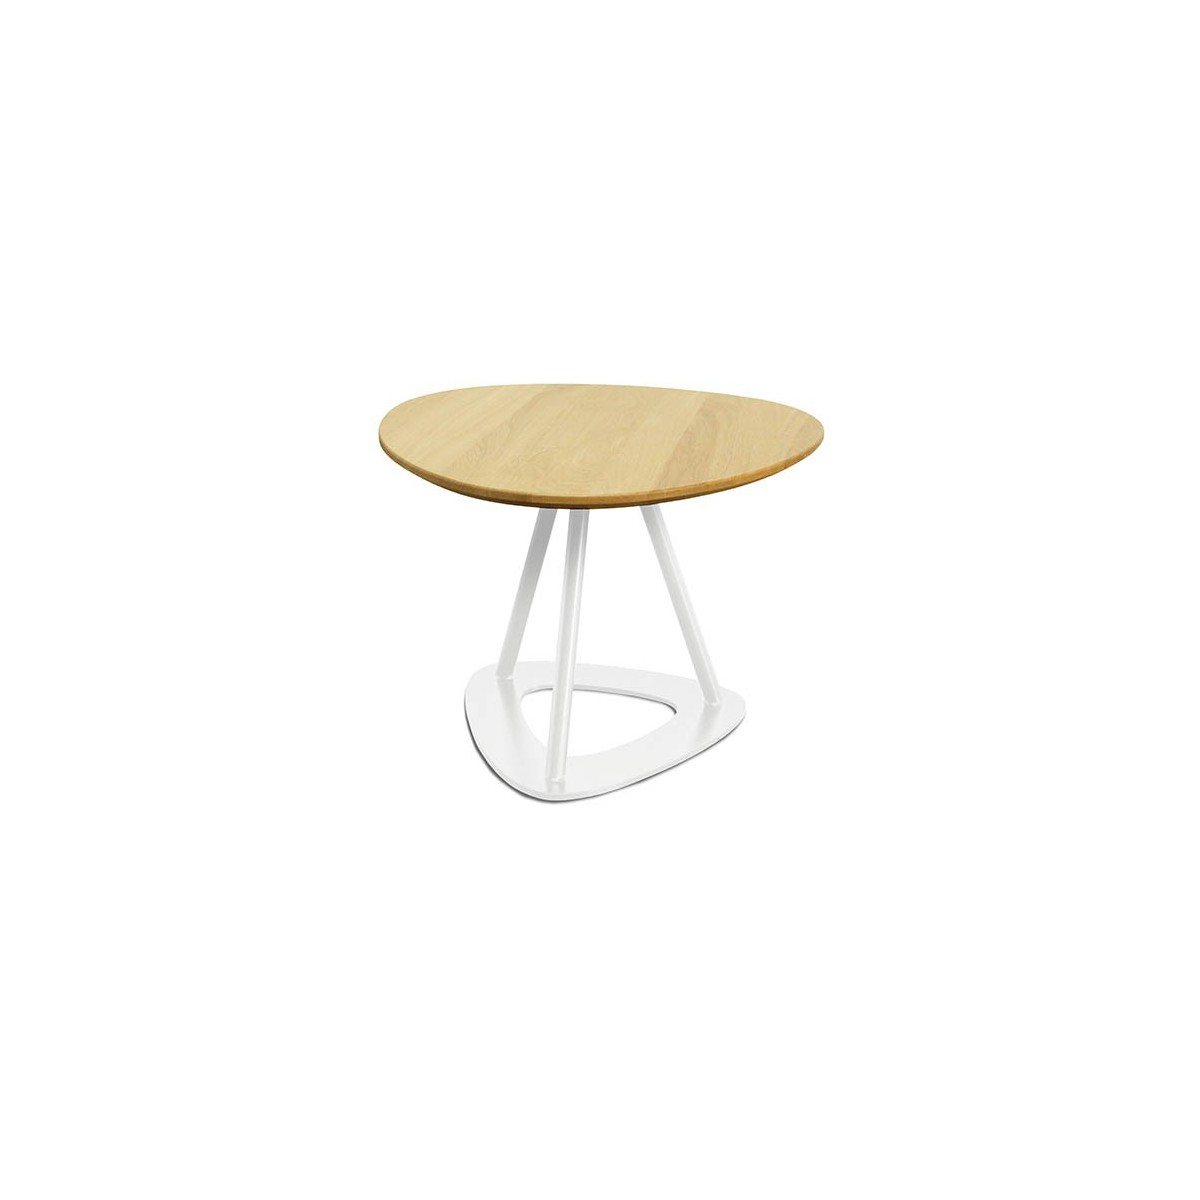 Tables basses contemporaines en ch ne et acier pop bois by - Table moderne en bois ...